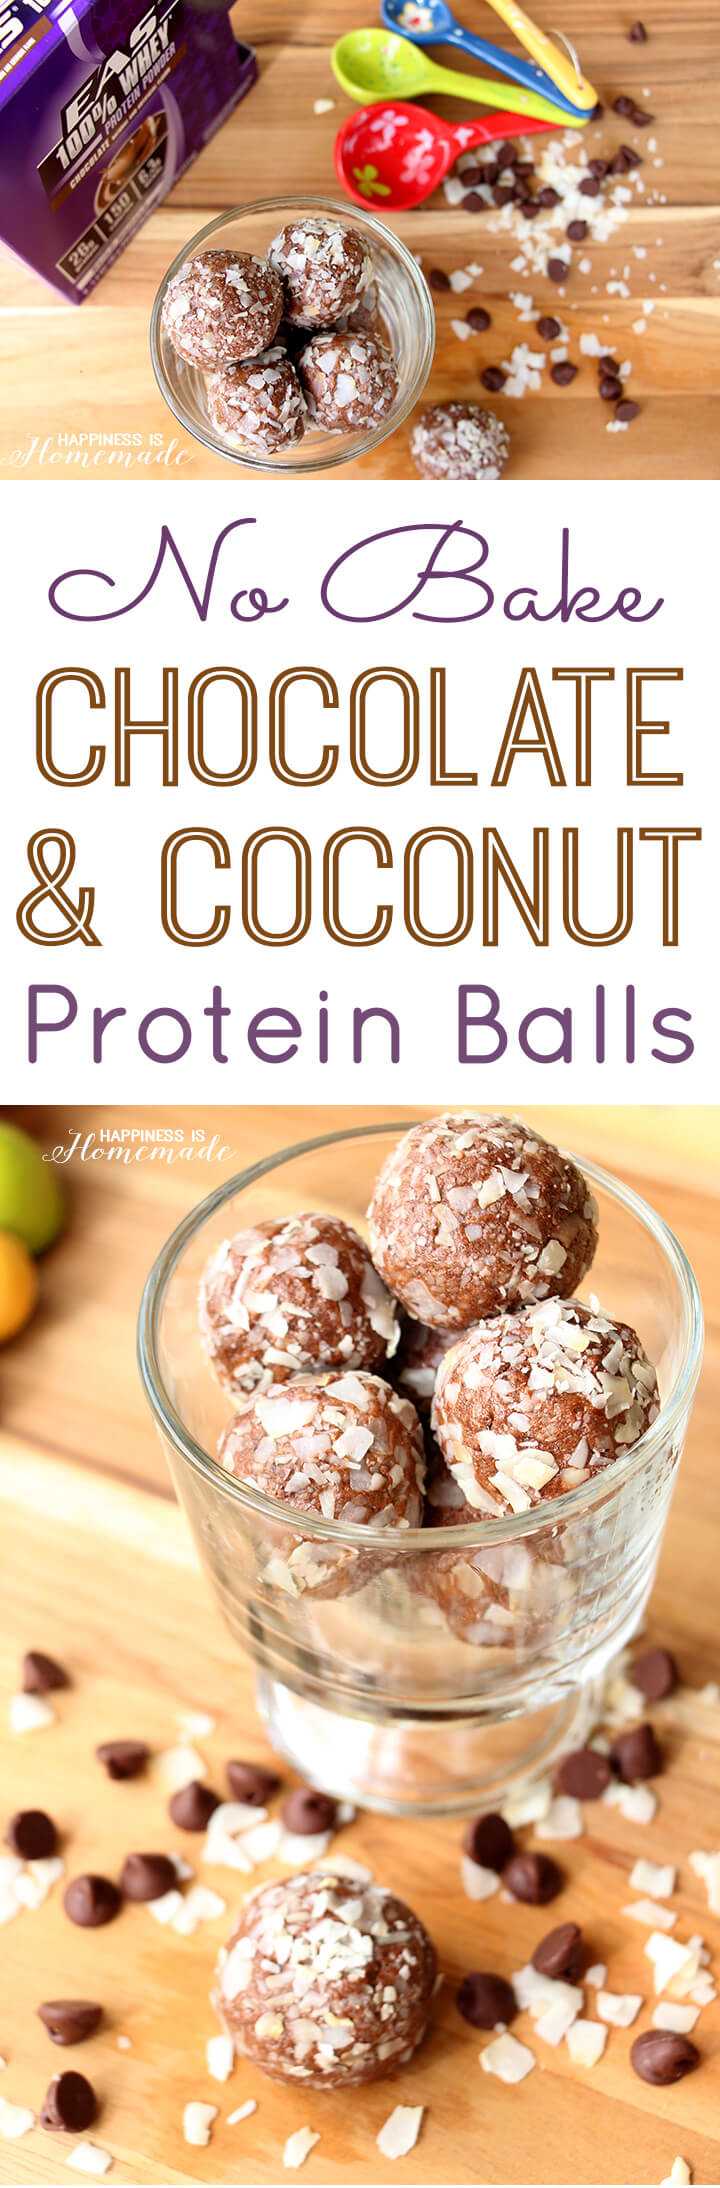 No Bake Chocolate and Coconut Protein Balls Recipe